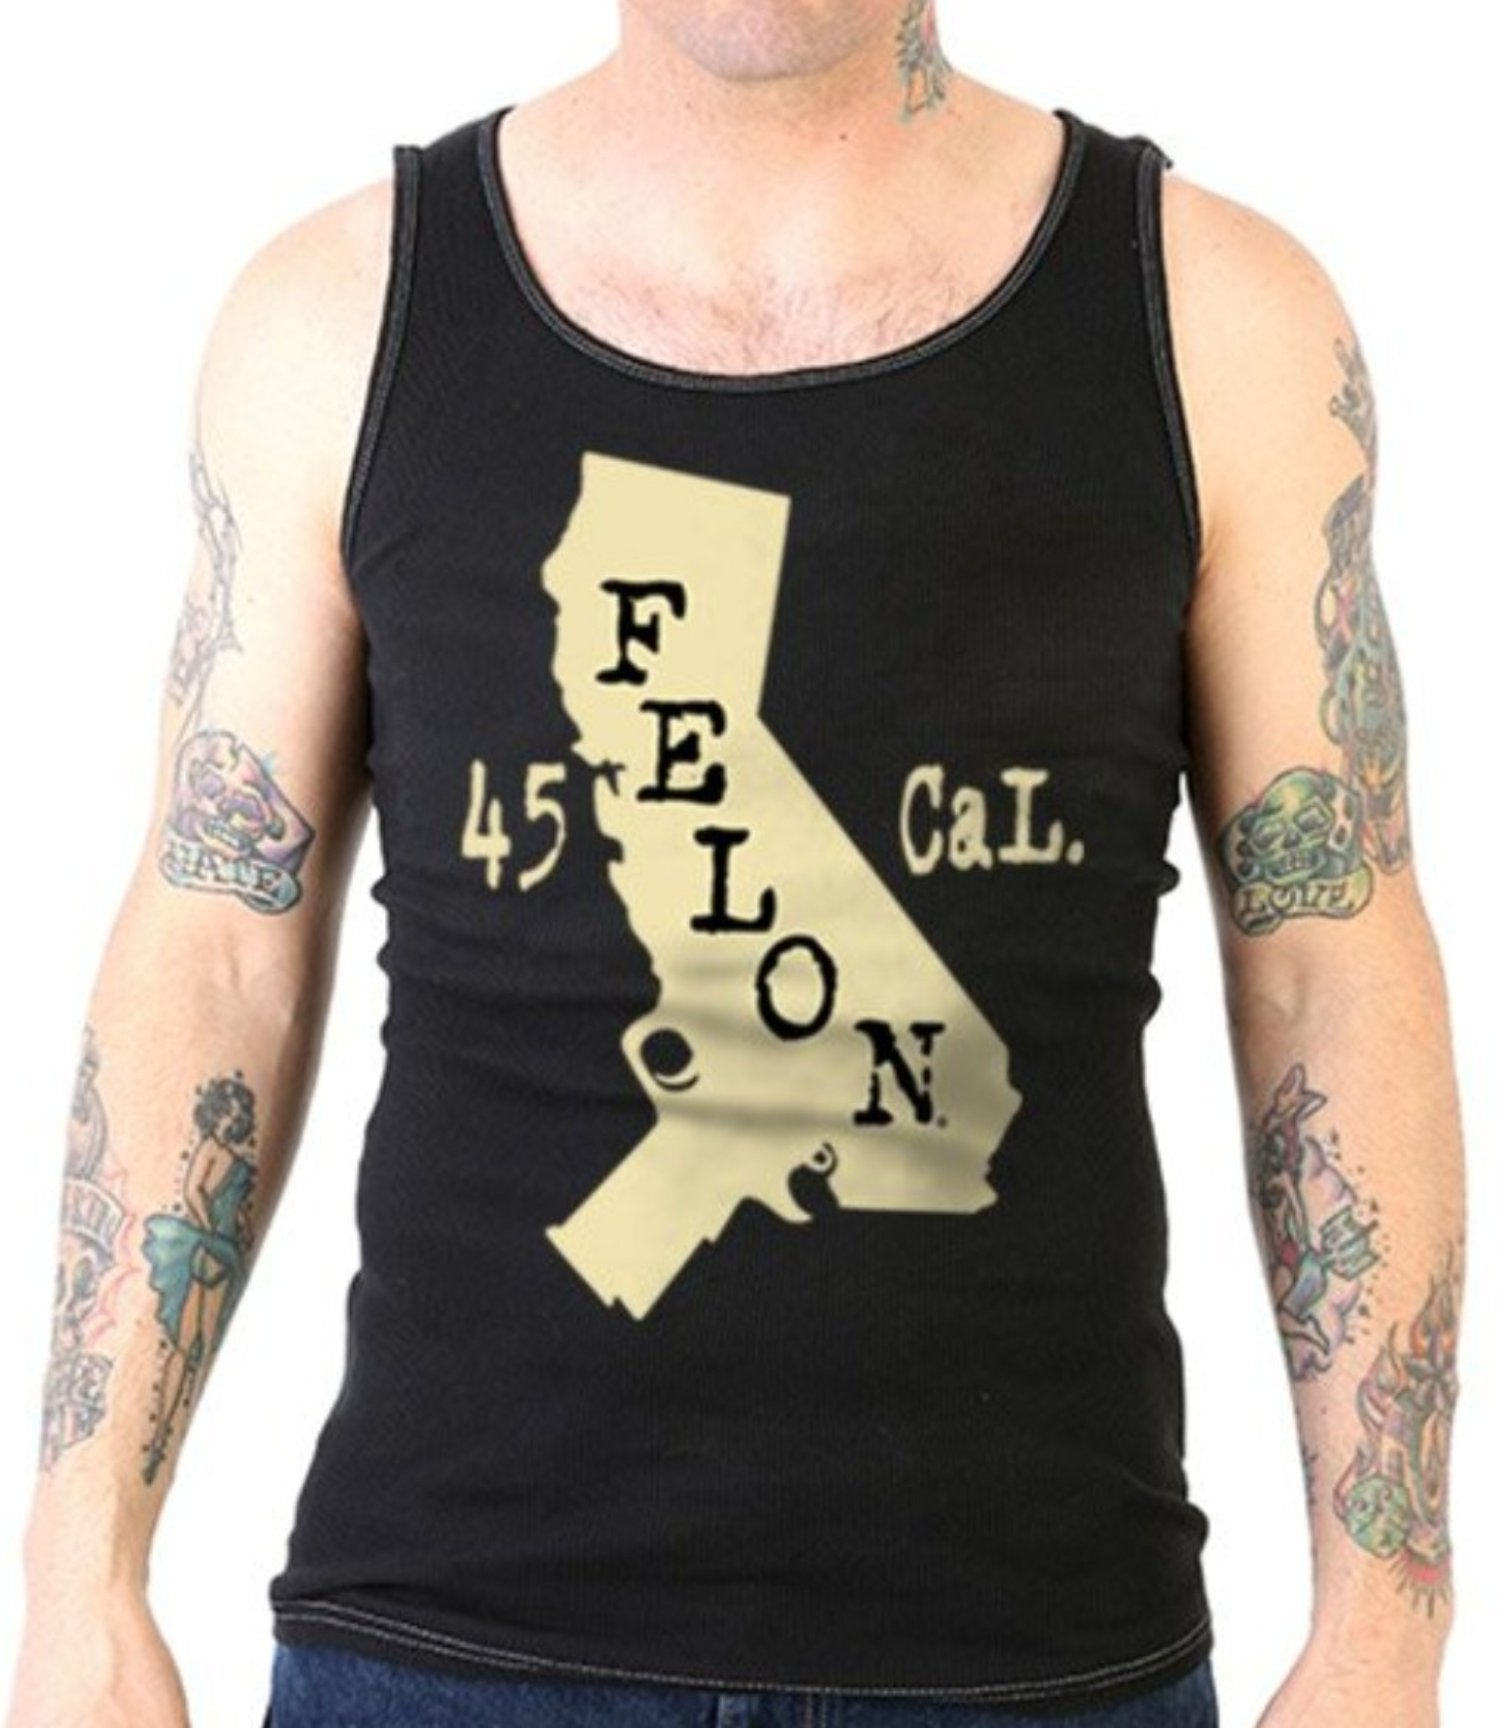 The CALI Rib Tank Top